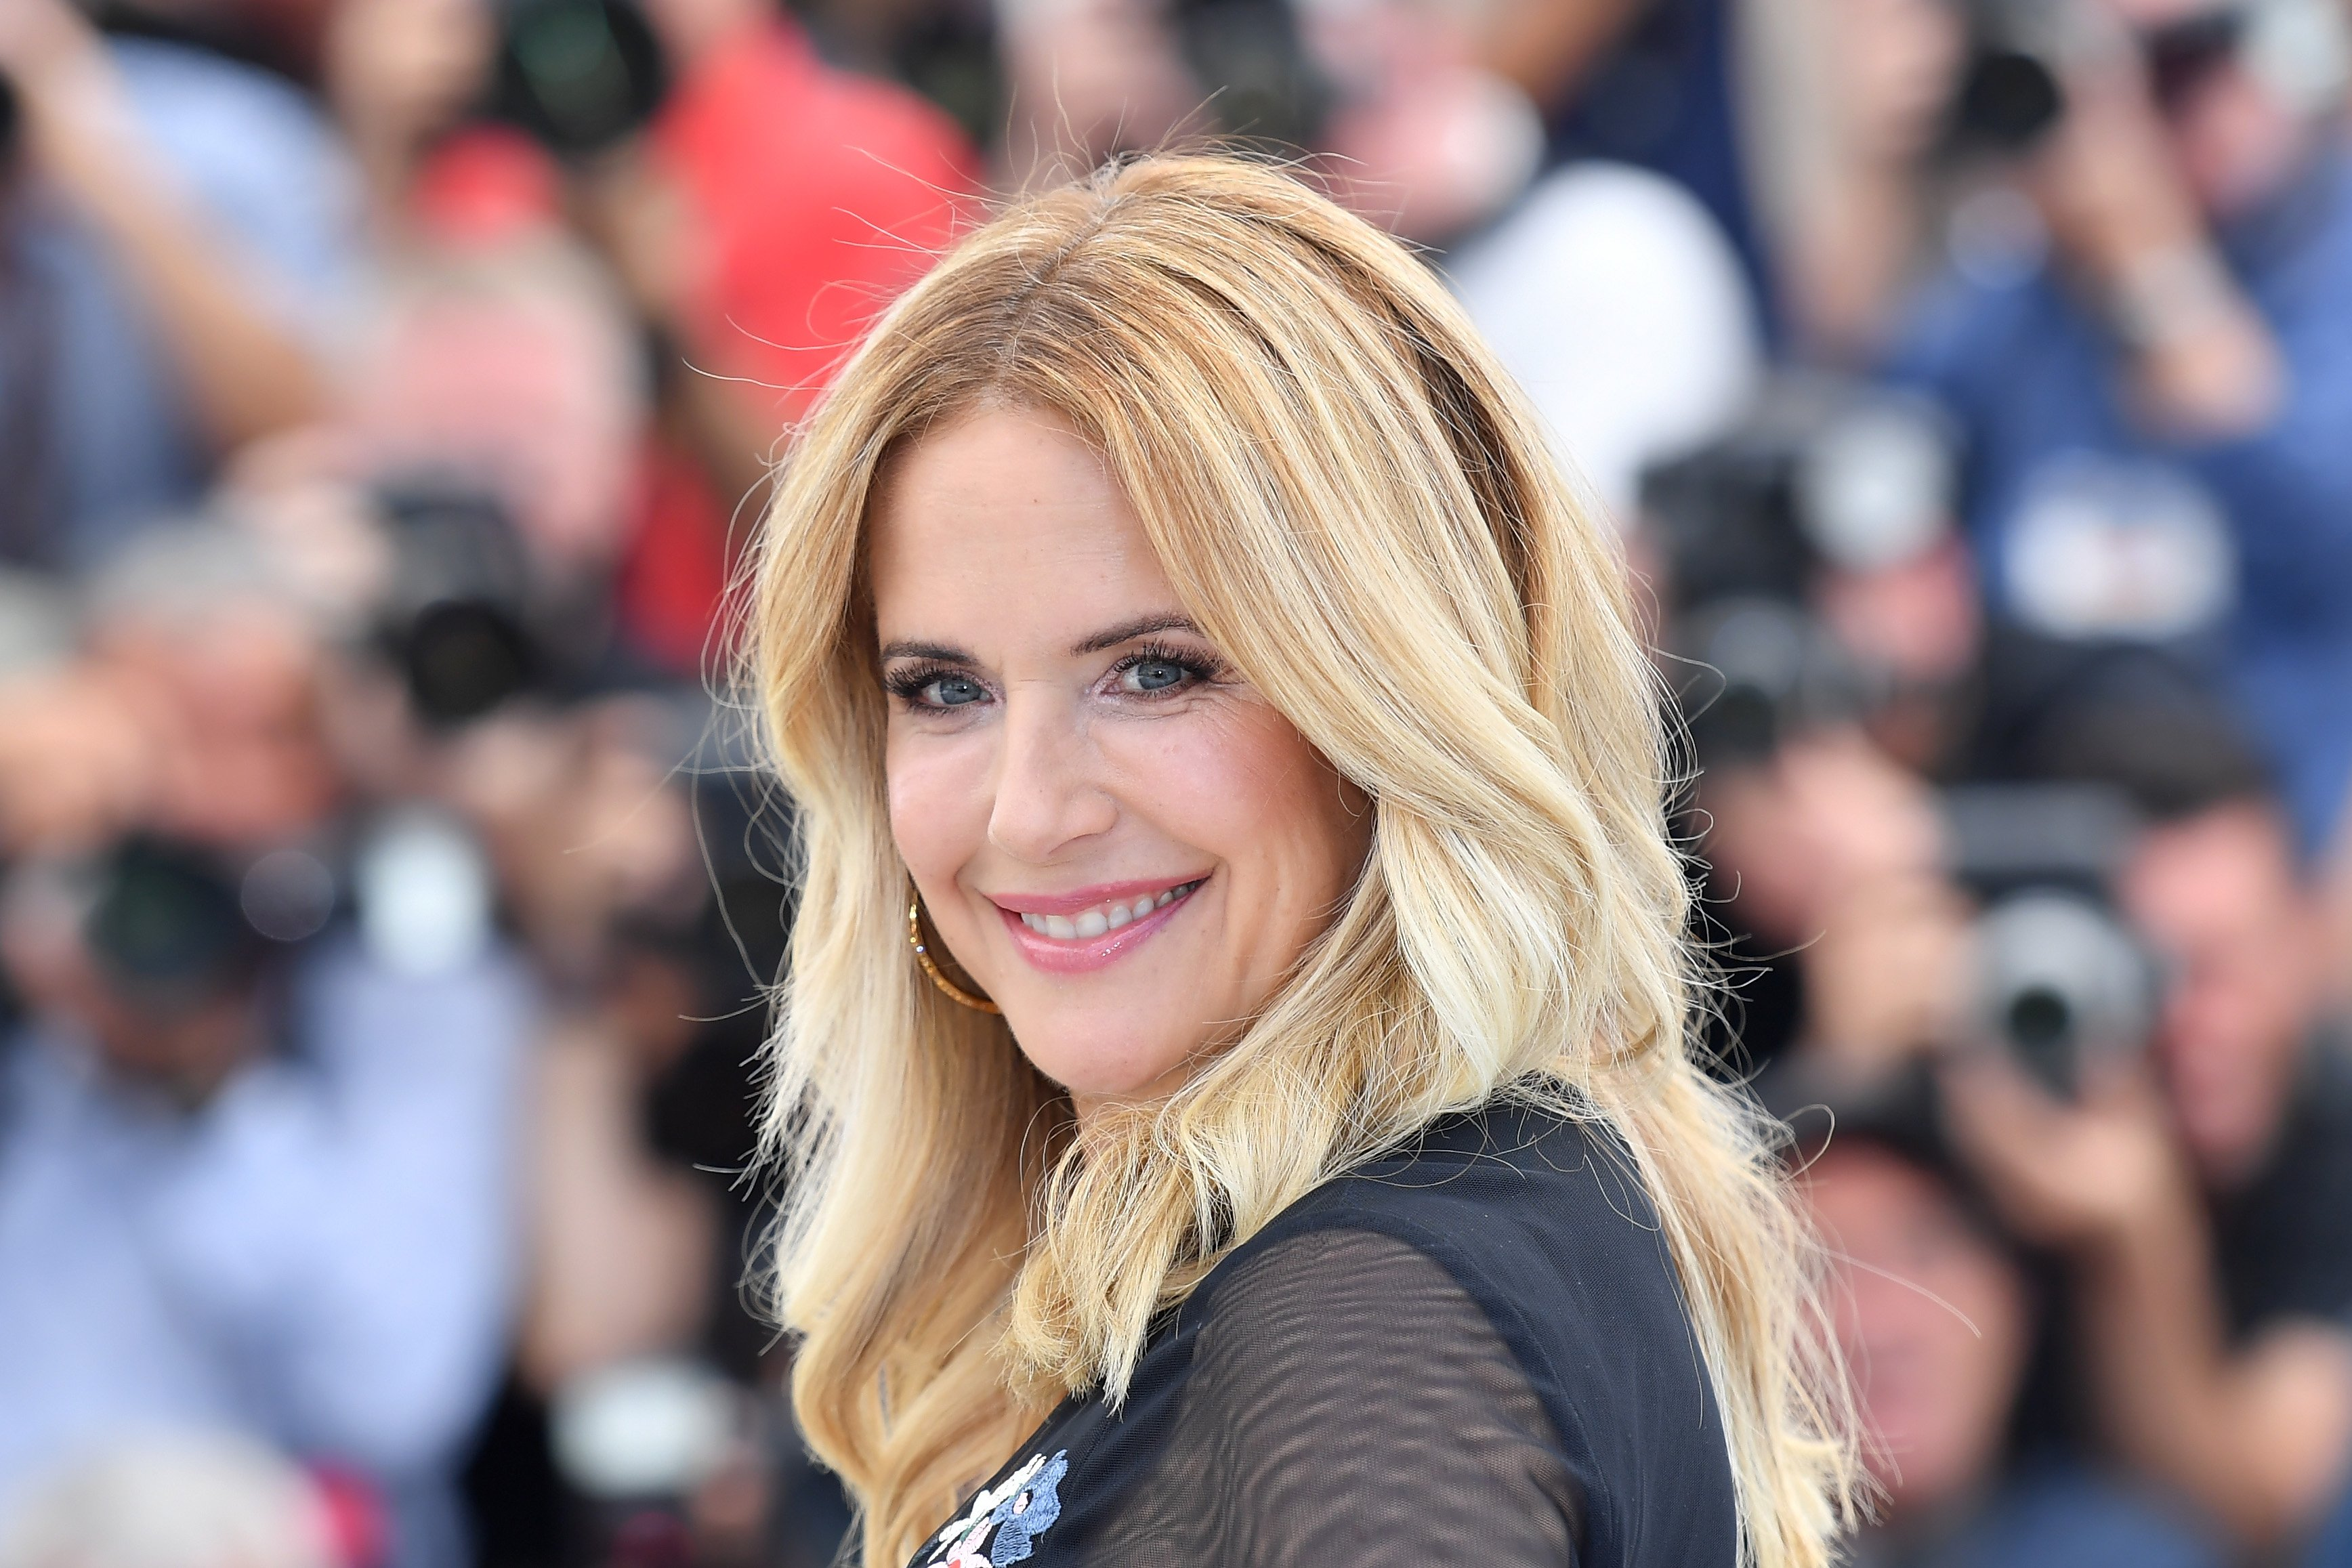 Image Source: Getty Images/Kelly with her blonde hair posing for the camera